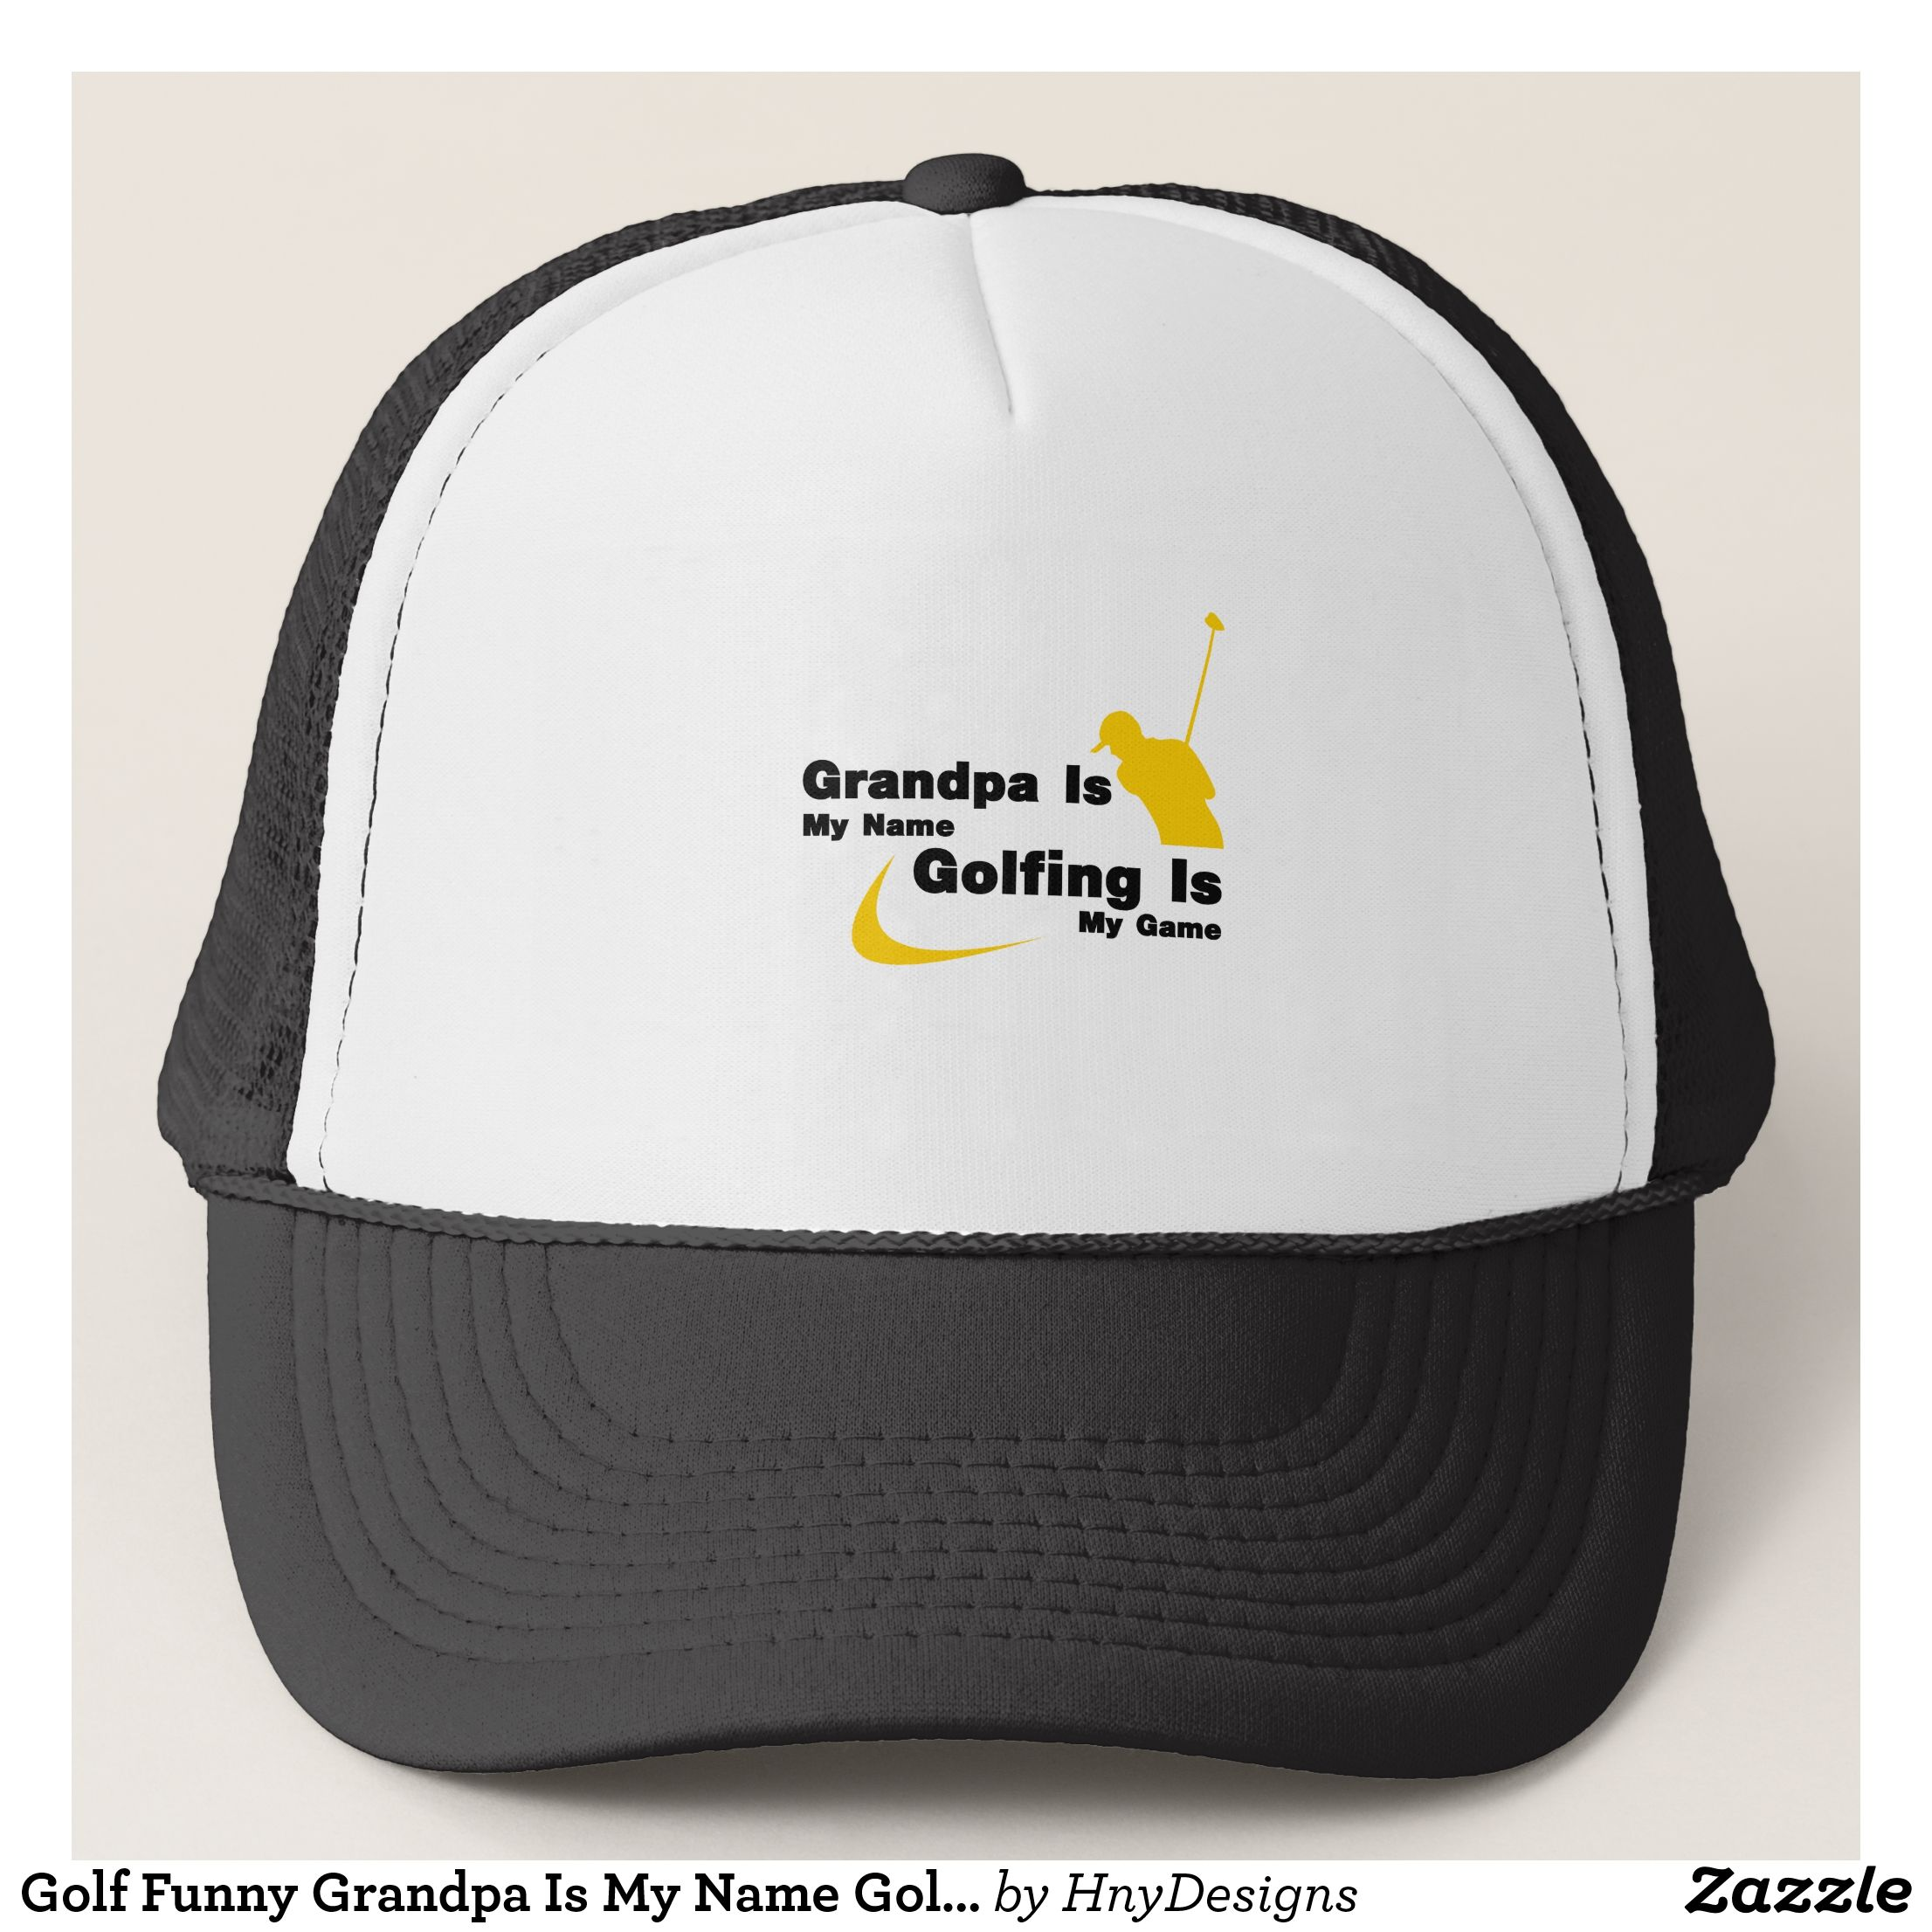 738266bd430 Golf Funny Grandpa Is My Name Golfing Is My Game Trucker Hat ...